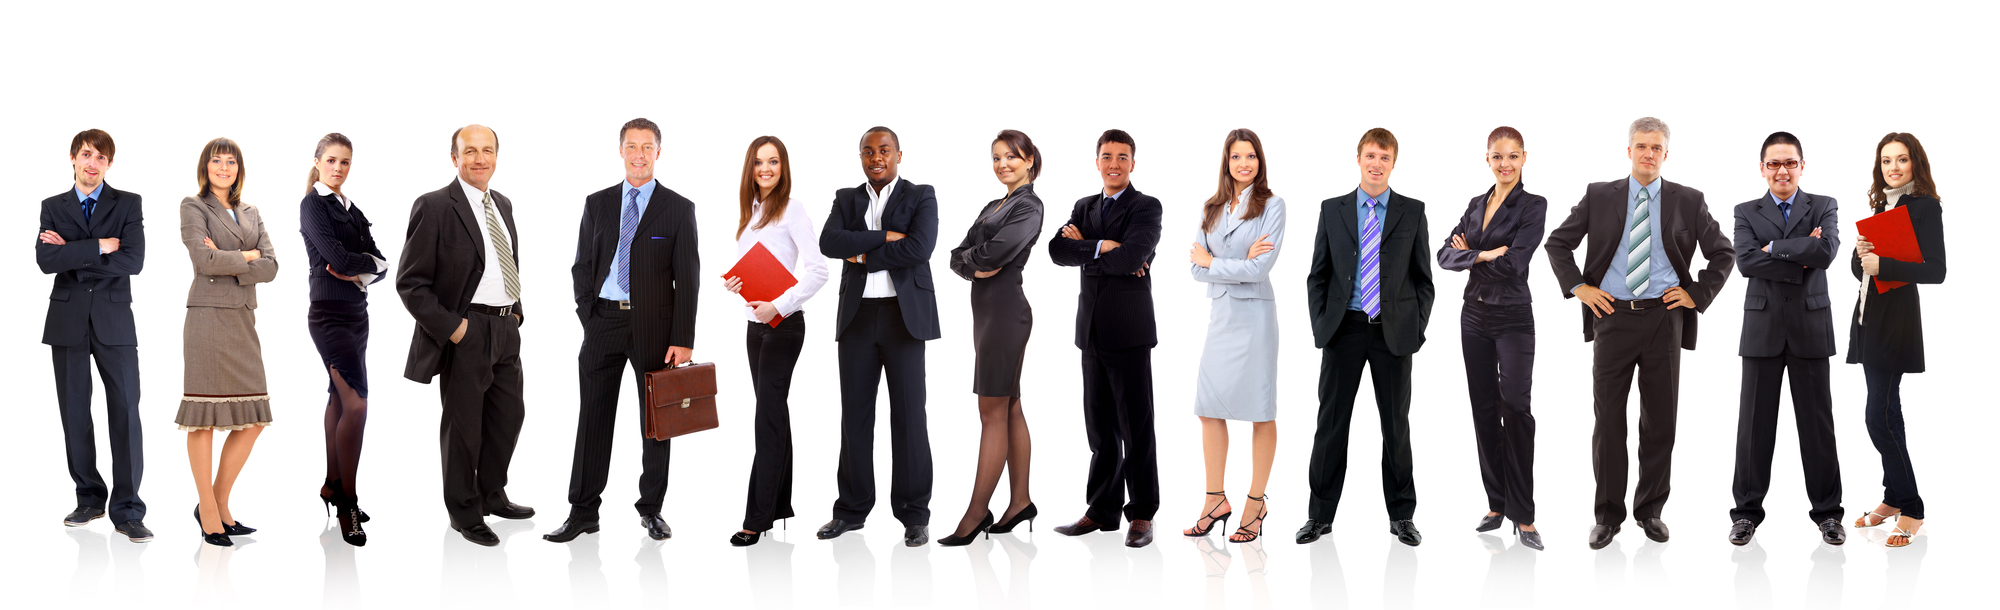 How to Attract & Retain Top Talent